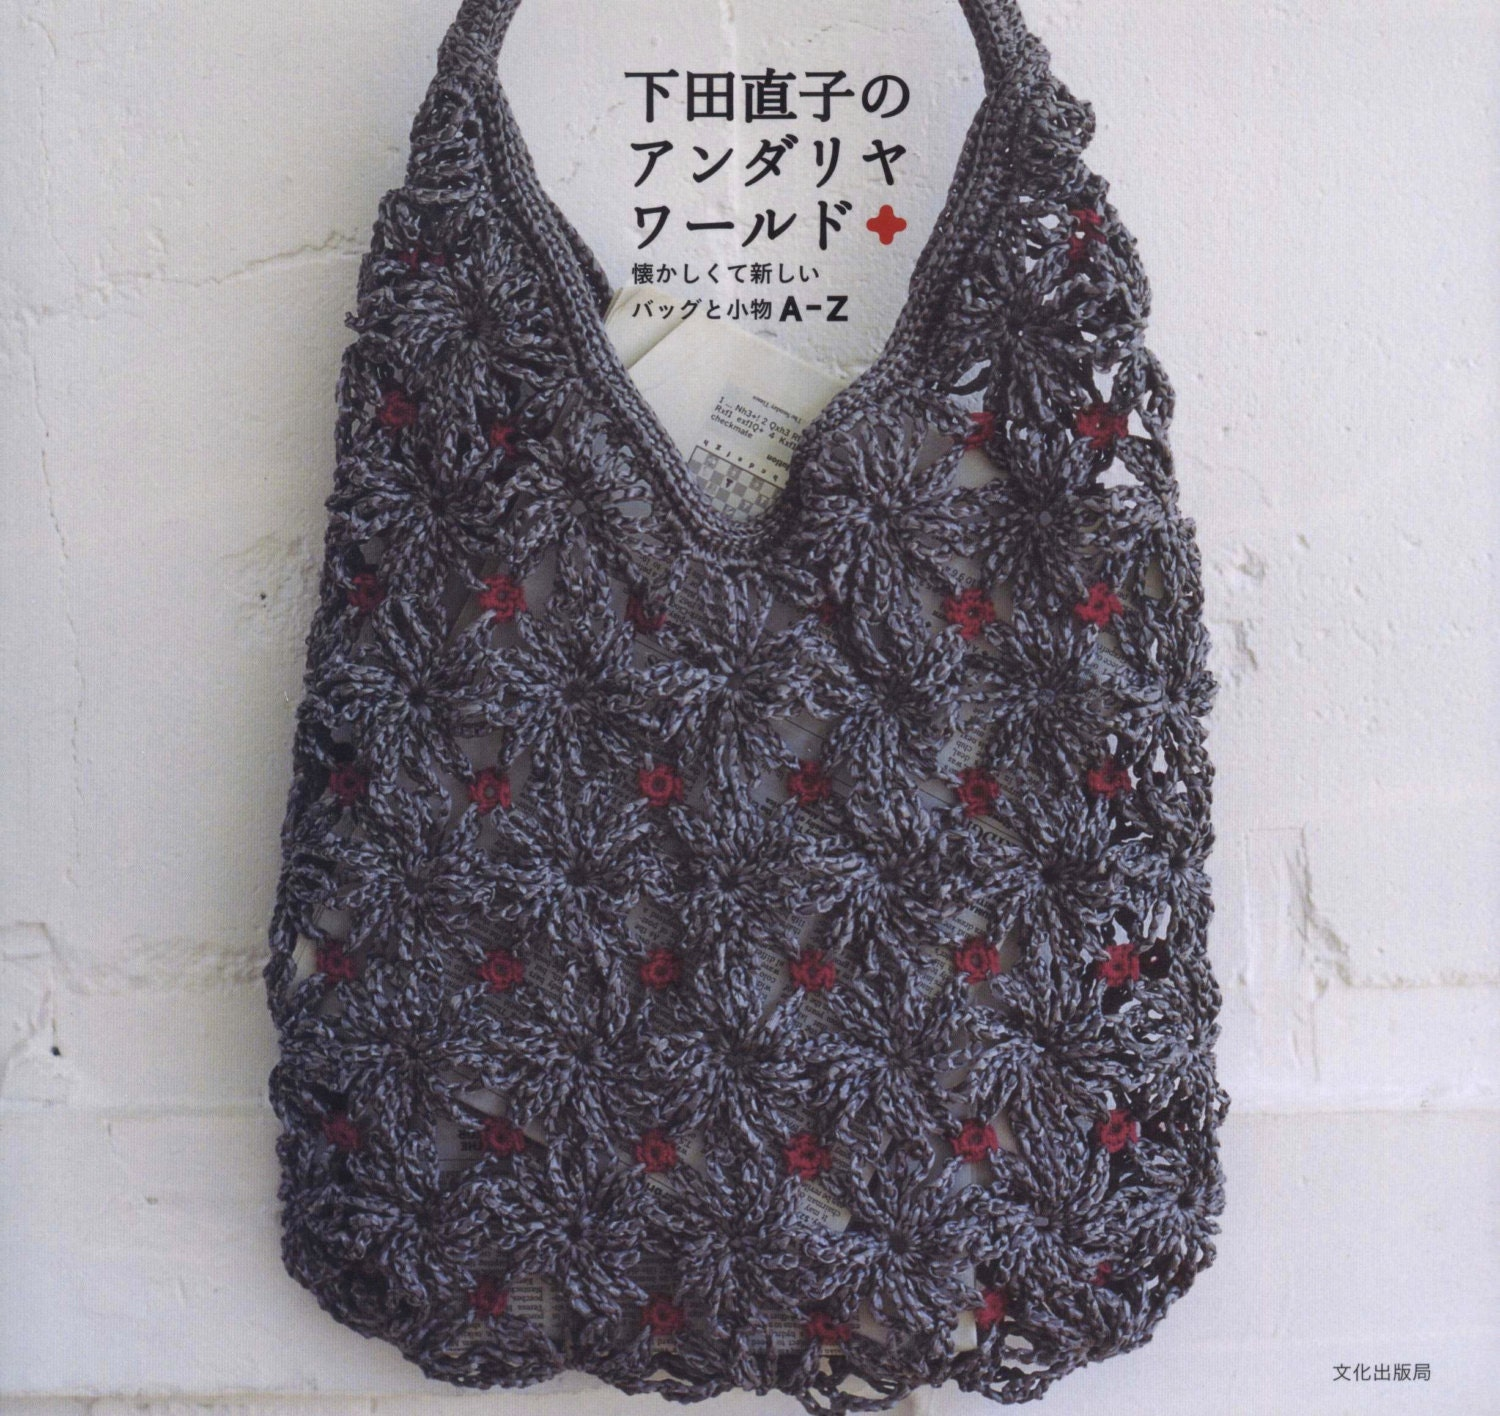 Crochet Bags And Accessories Japanese Crochet Craft Book Pdf